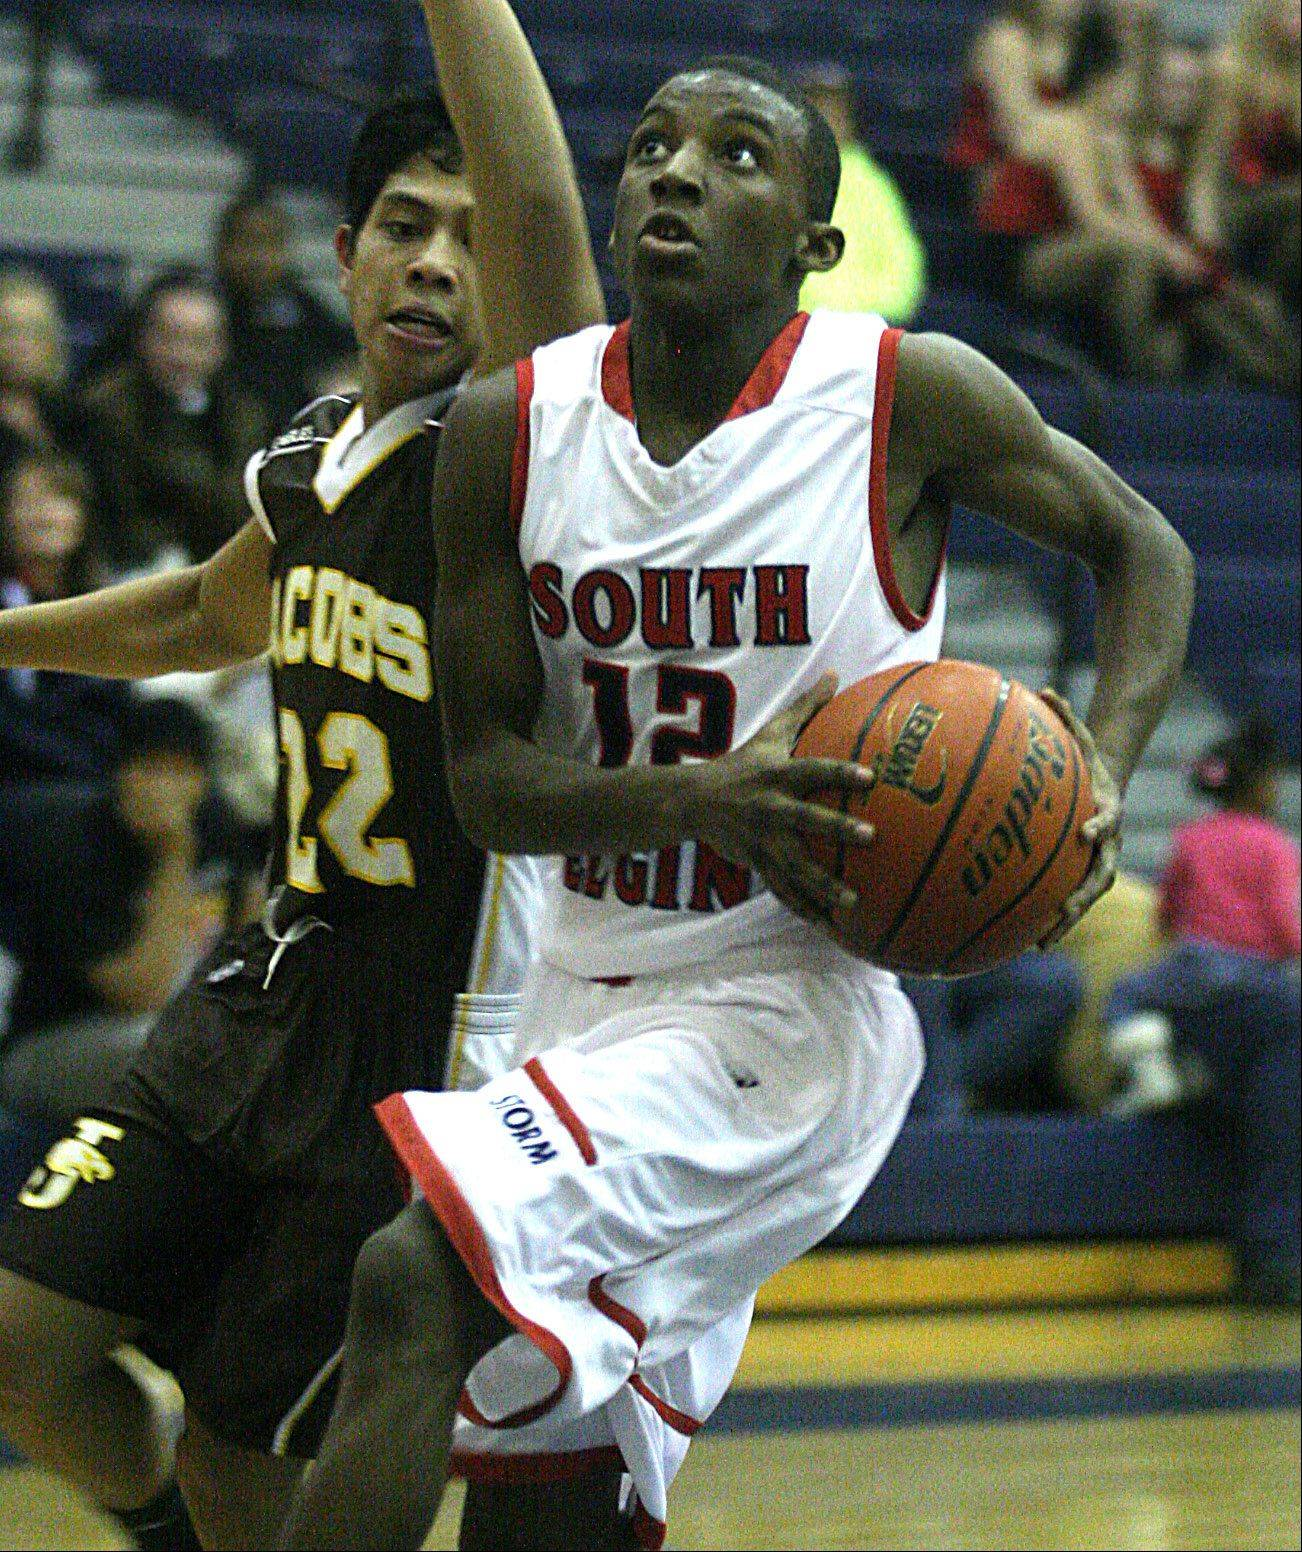 Jacobs' Patrick Nerja, left, tries to catch South Elgin's Devonte Cager near the hoop at South Elgin on Tuesday night.